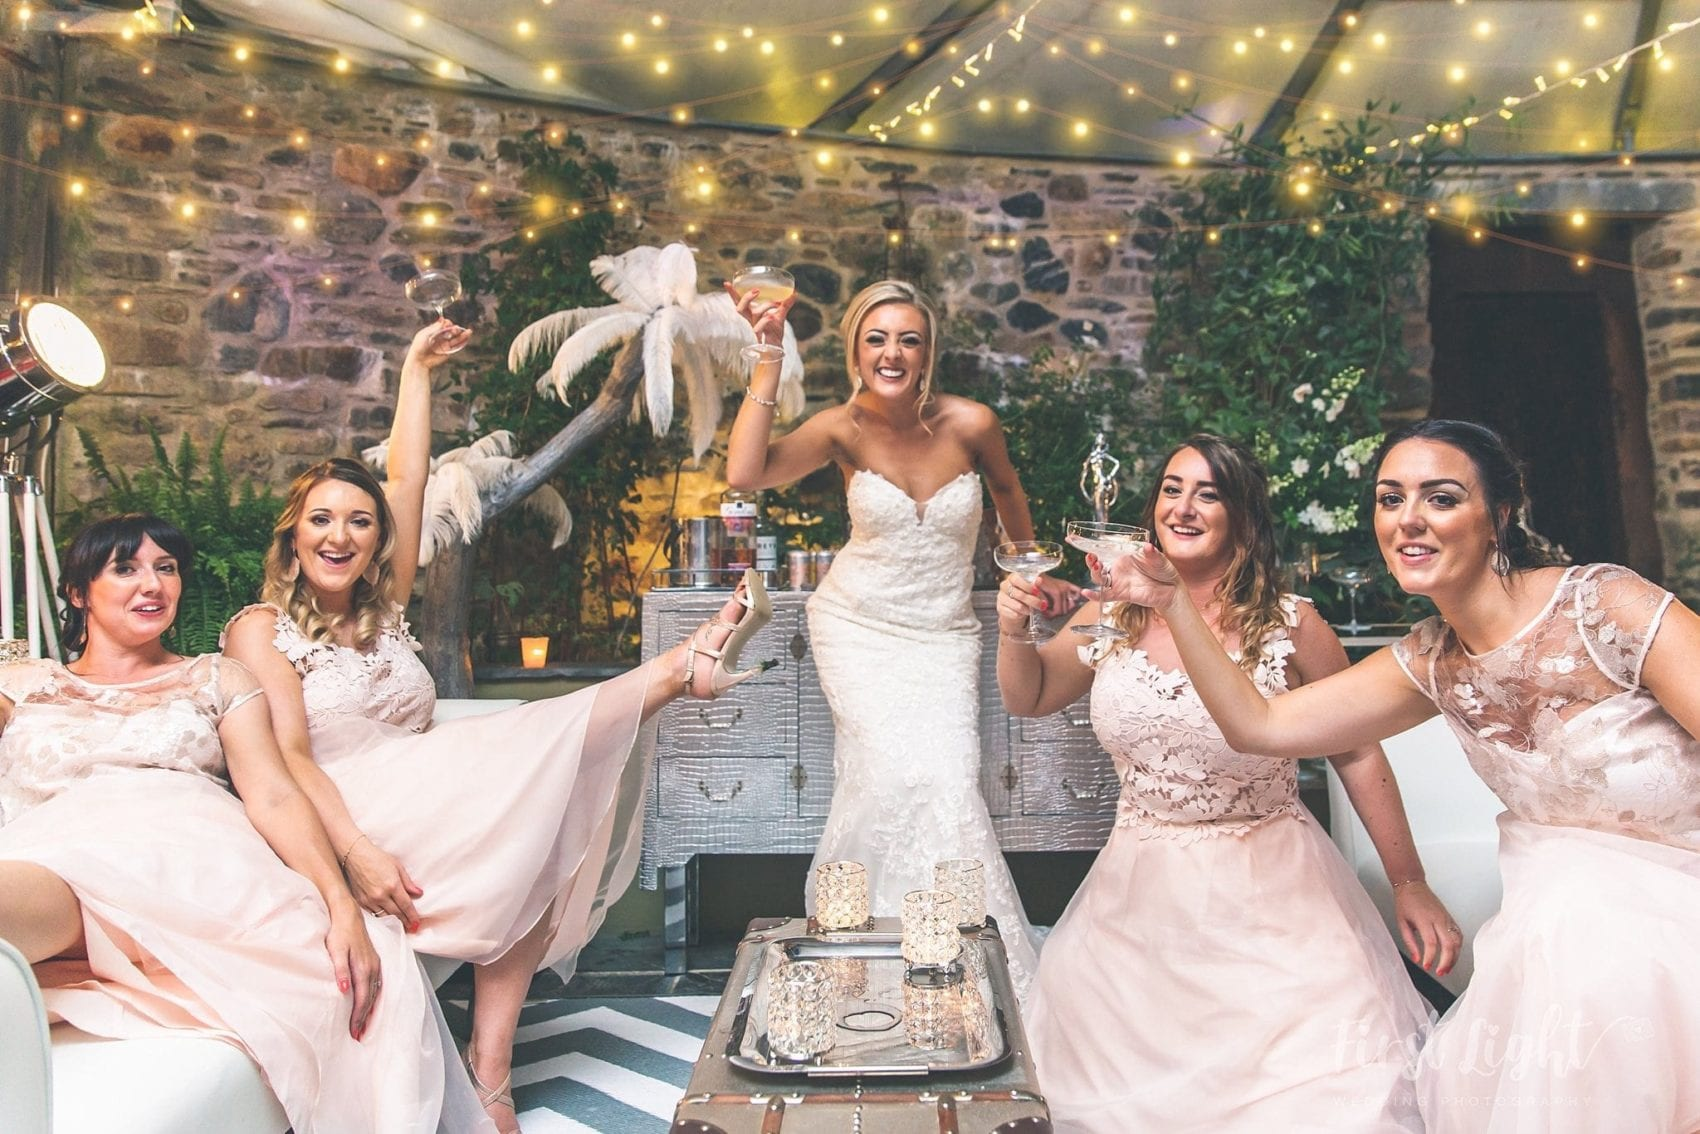 pop up lounge, champagne, gin, girls, bridesmaids, bridesmaid, party, fun, celebration, toasting, toasts, cheers